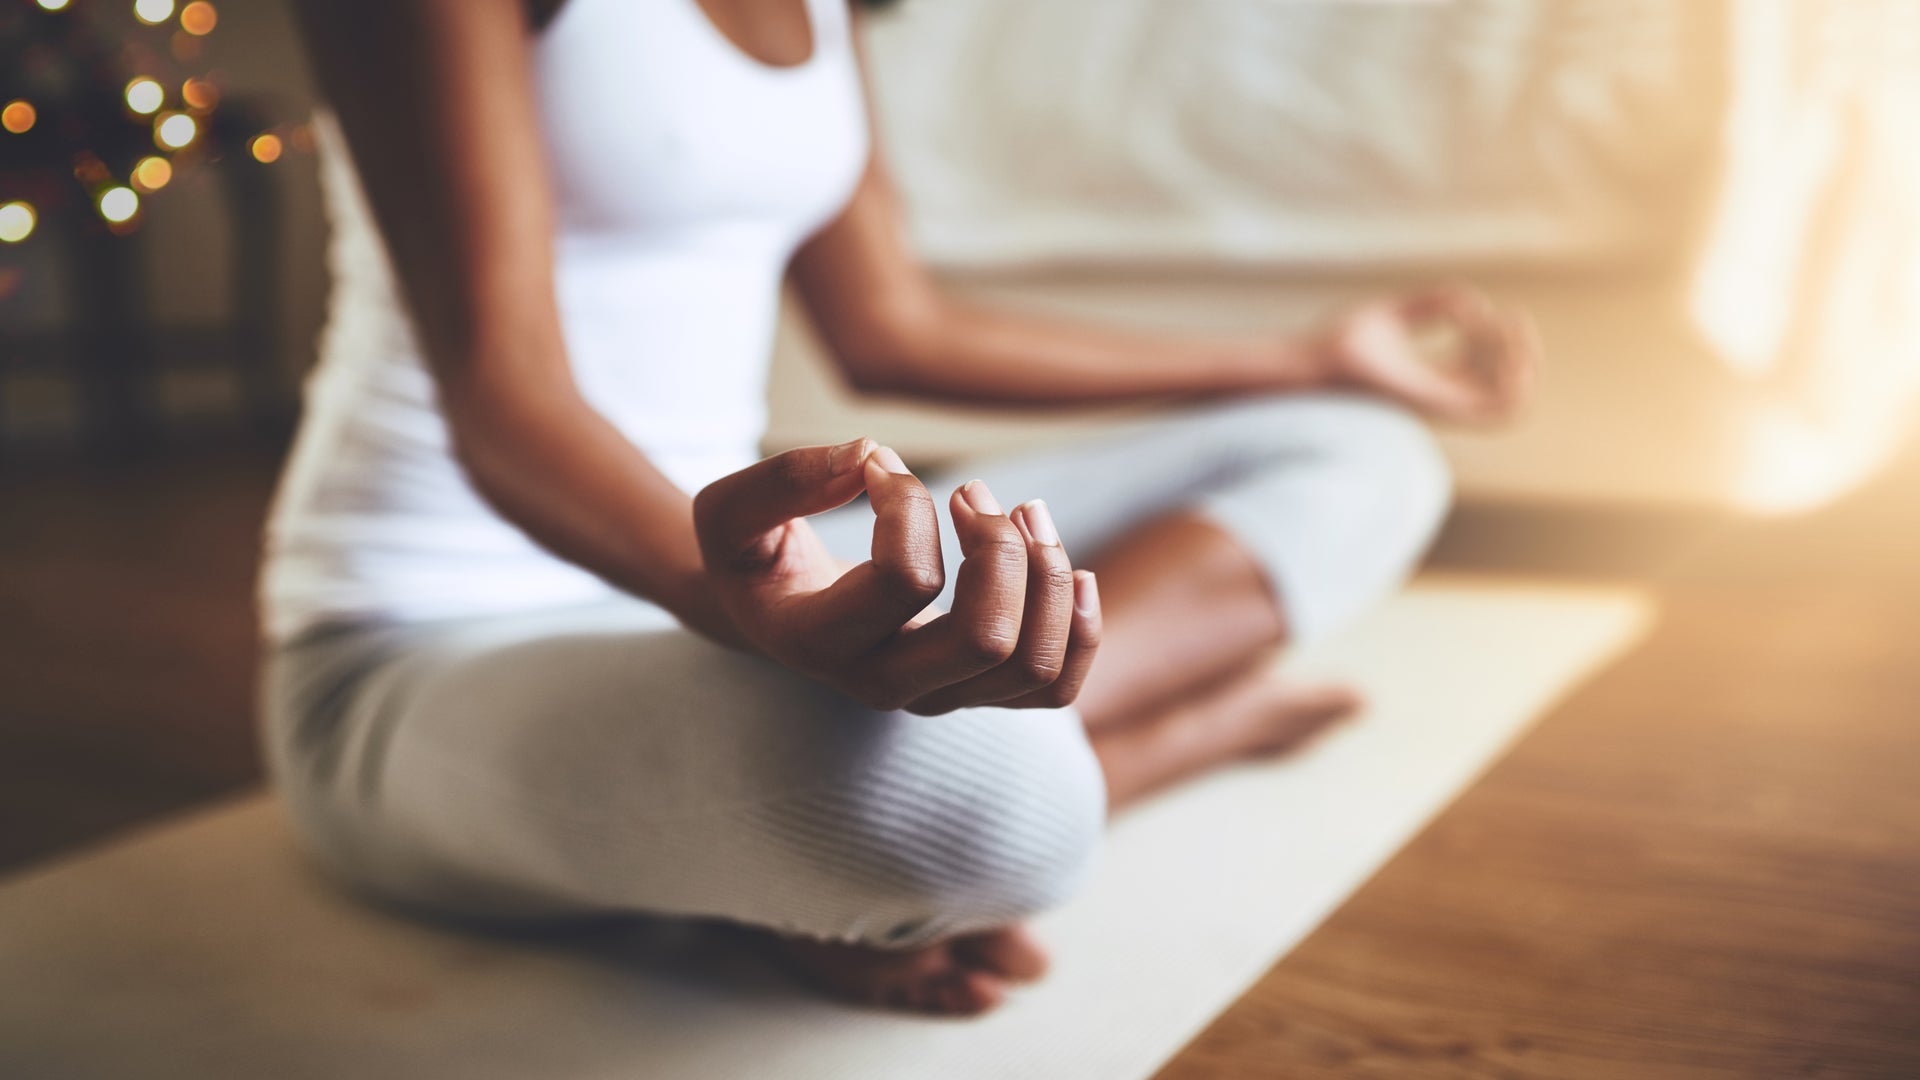 How Meditating Changed My Life and Why I Think It Can Change Yours Too